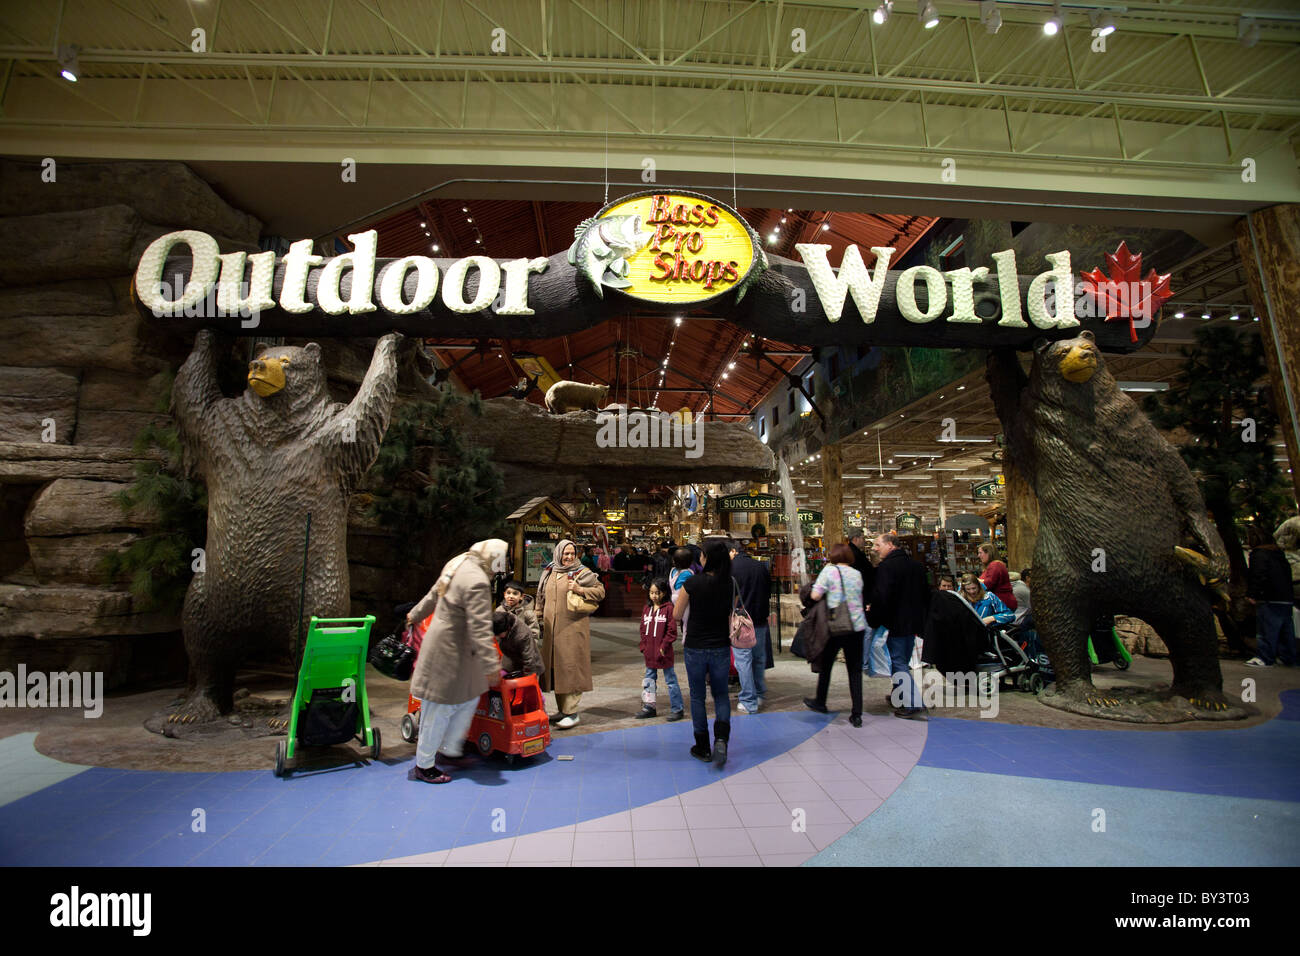 Bass Pro Shops Outdoor World Stock Photos & Bass Pro Shops Outdoor World Stock Images - Alamy